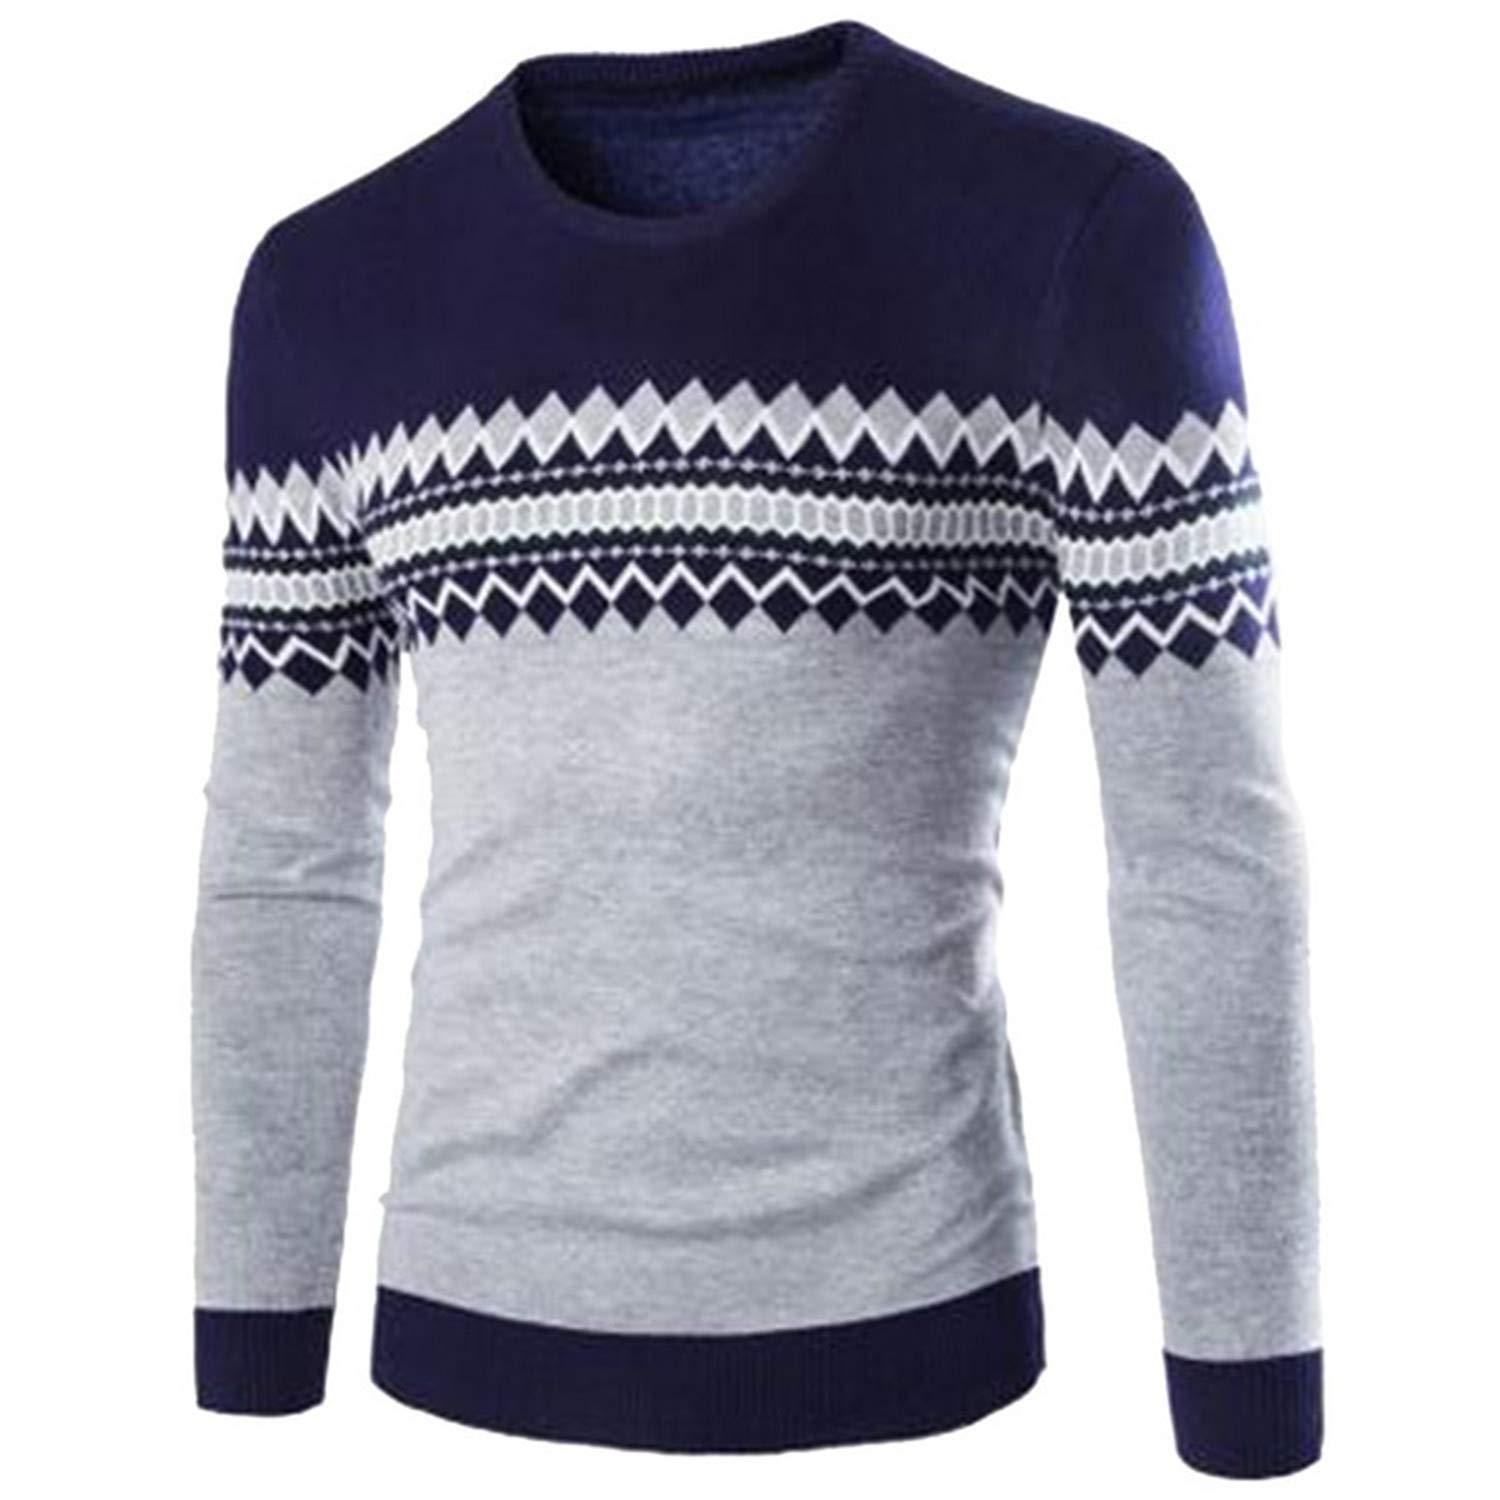 Thadensama Mens Sweater Winter Pullover Men Sweaters Cotton Casual O Neck Sweater Jumpers Thin Male Knitwear Top